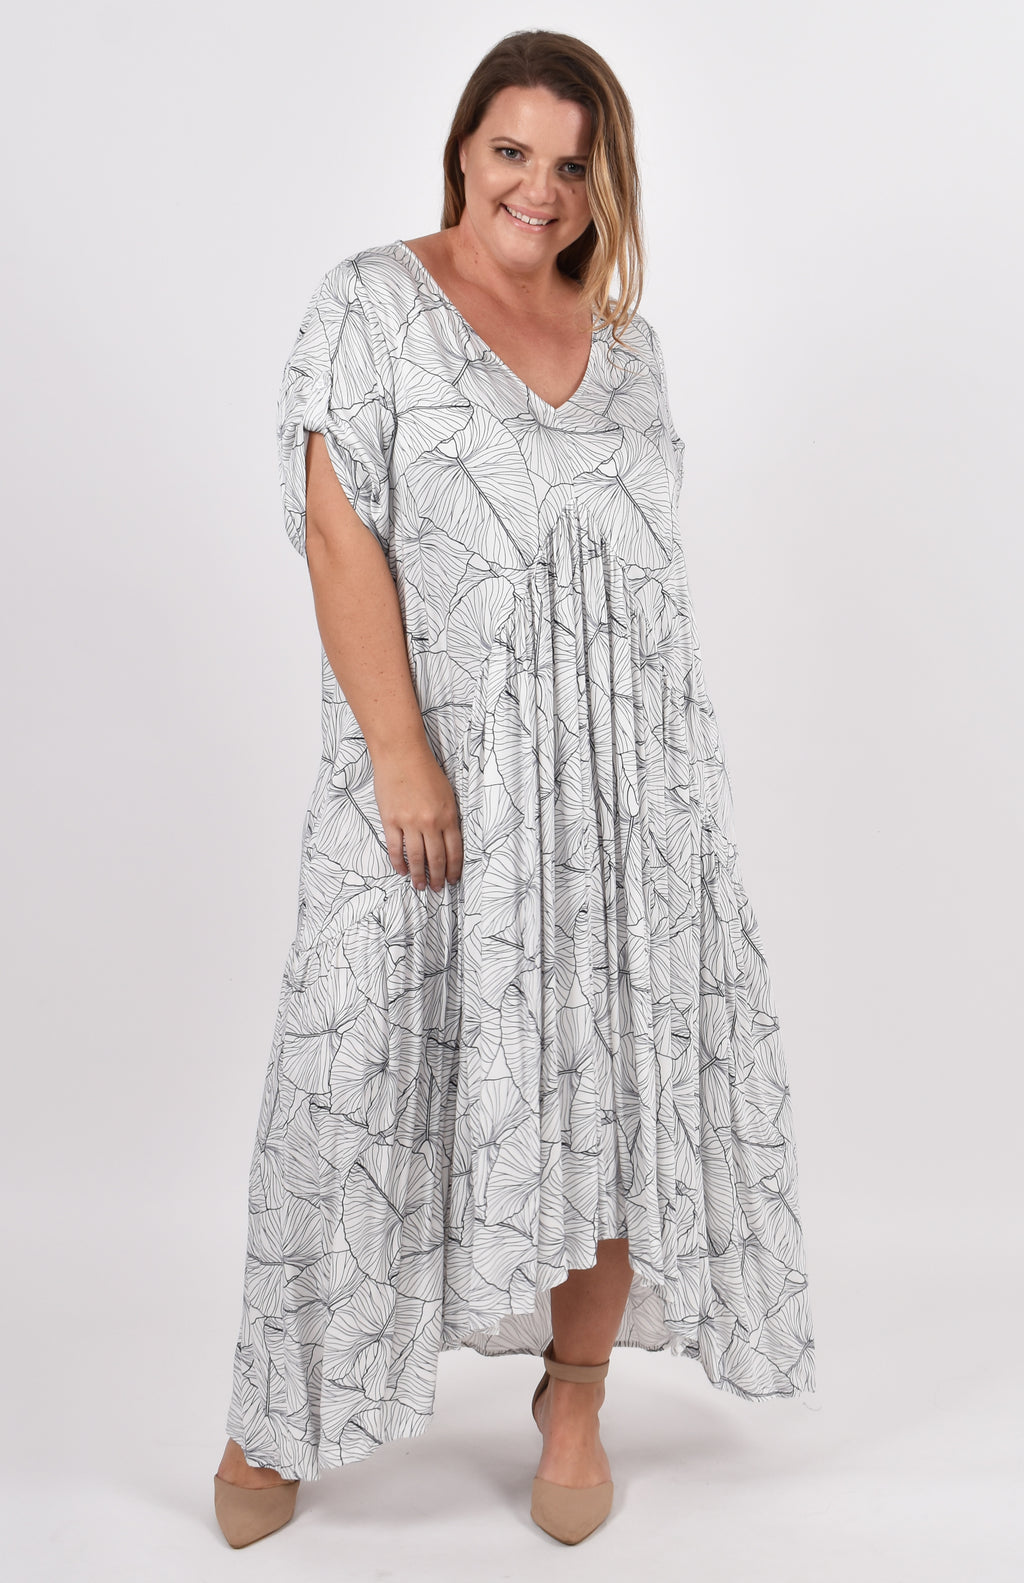 Short Sleeve Peak Maxi Dress in Coastal Dream